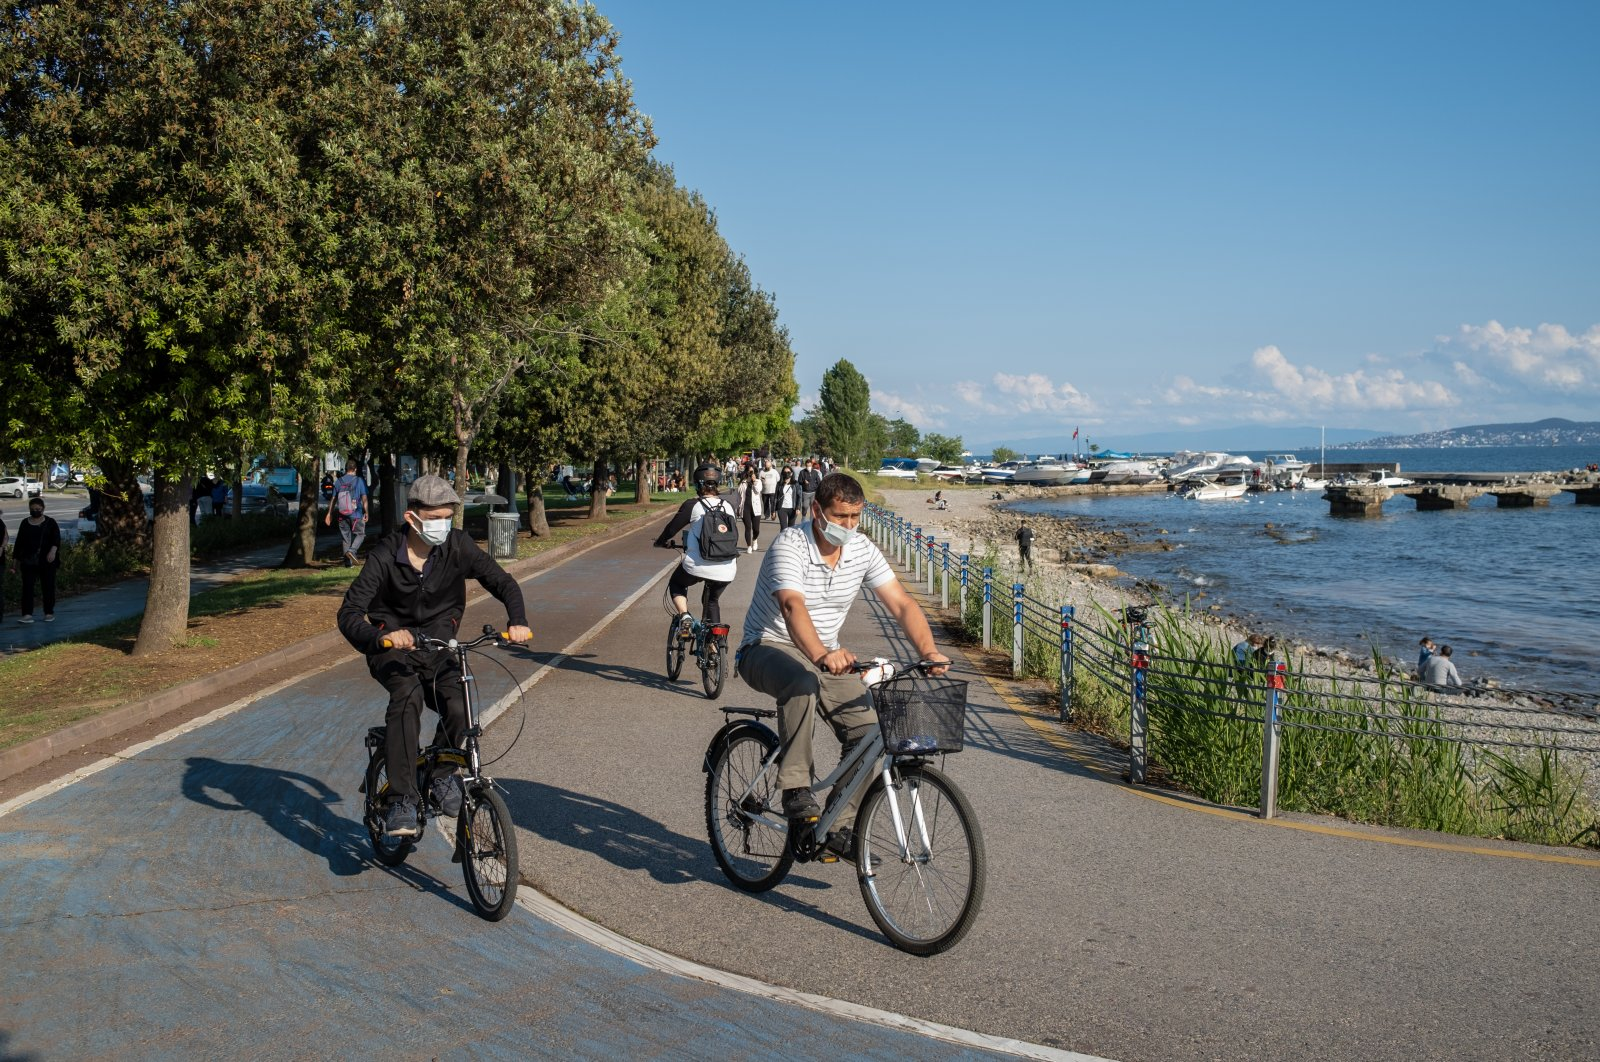 People wearing protective masks against COVID-19 ride bicycles in Istanbul, Turkey, June 1, 2021. (GETTY IMAGES)